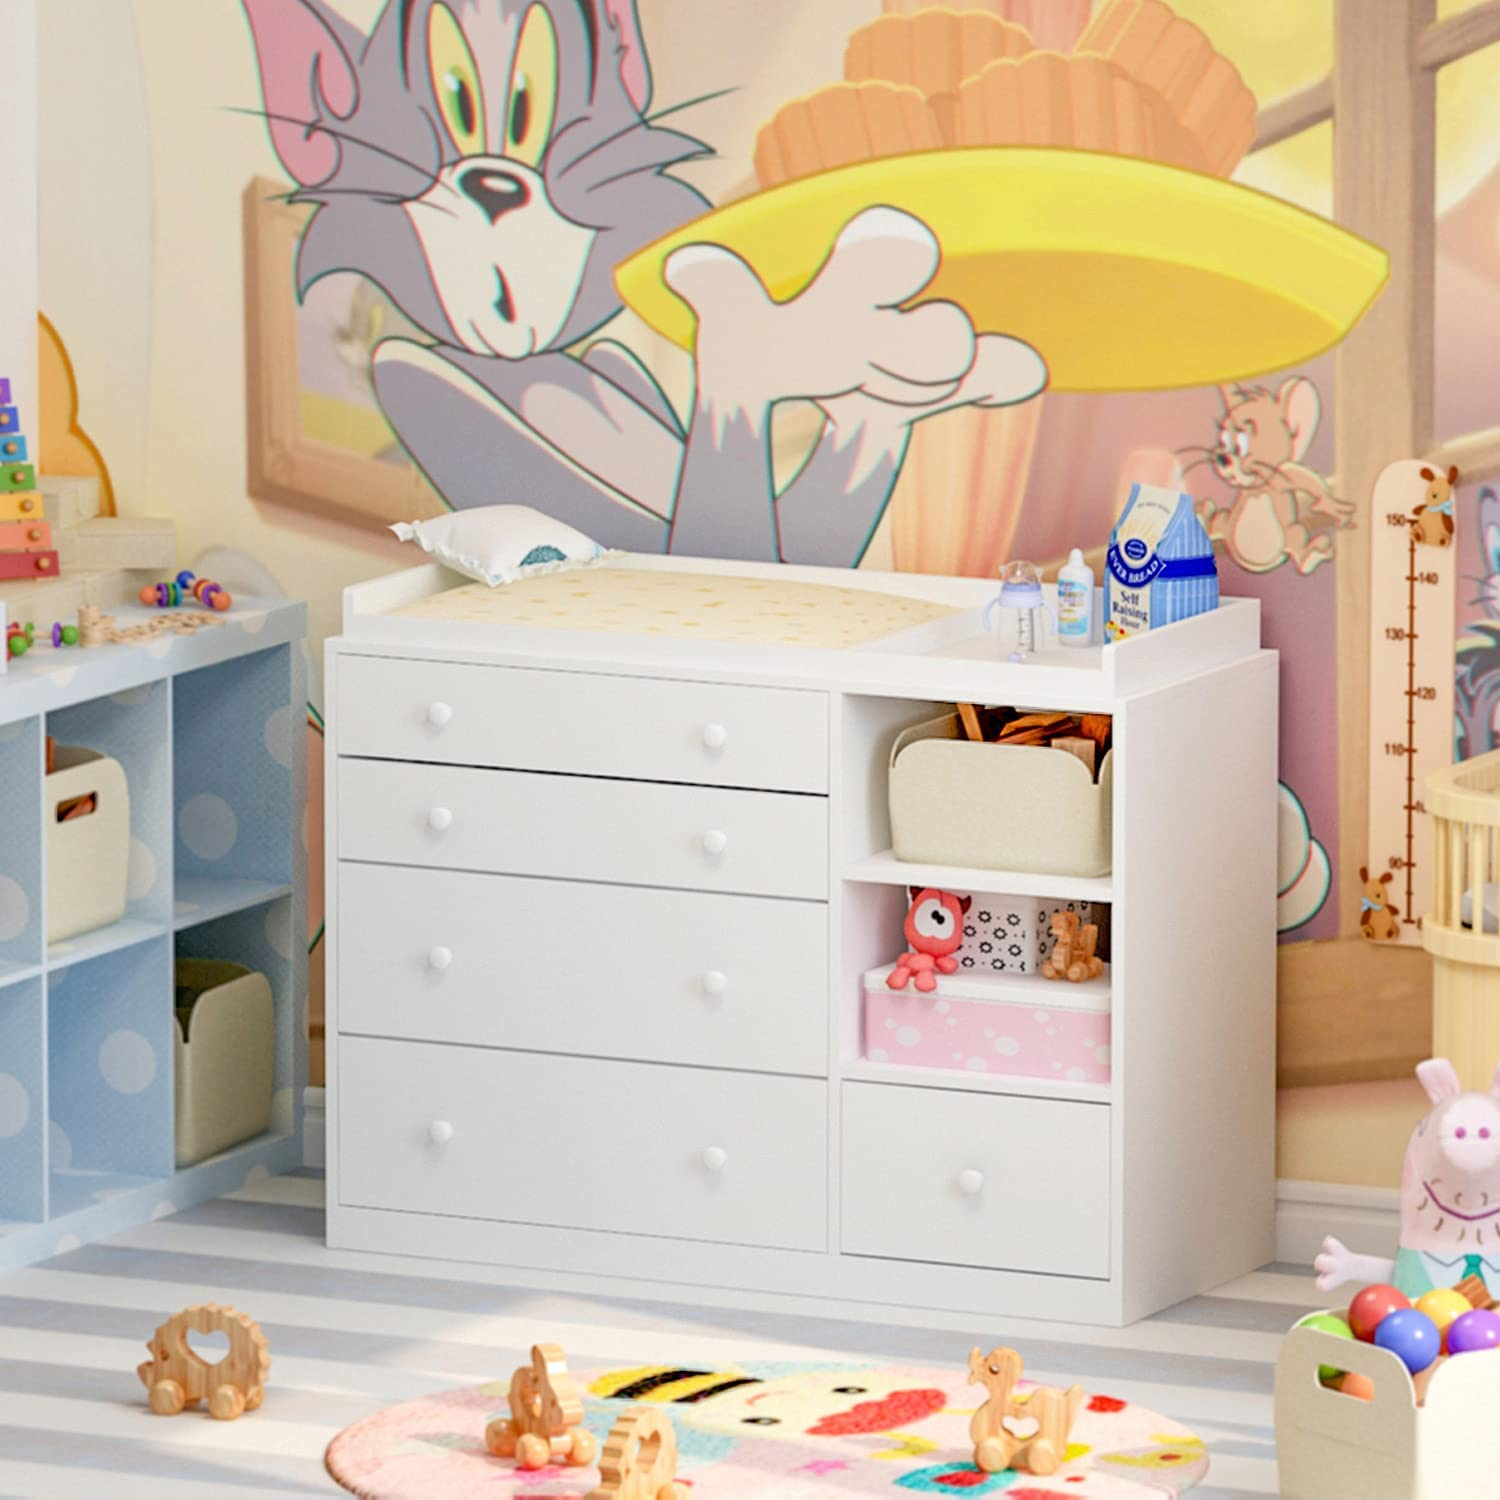 FAMAPY New item Nursery Dresser Baby with outlet Shelves 2 5 Drawer fo